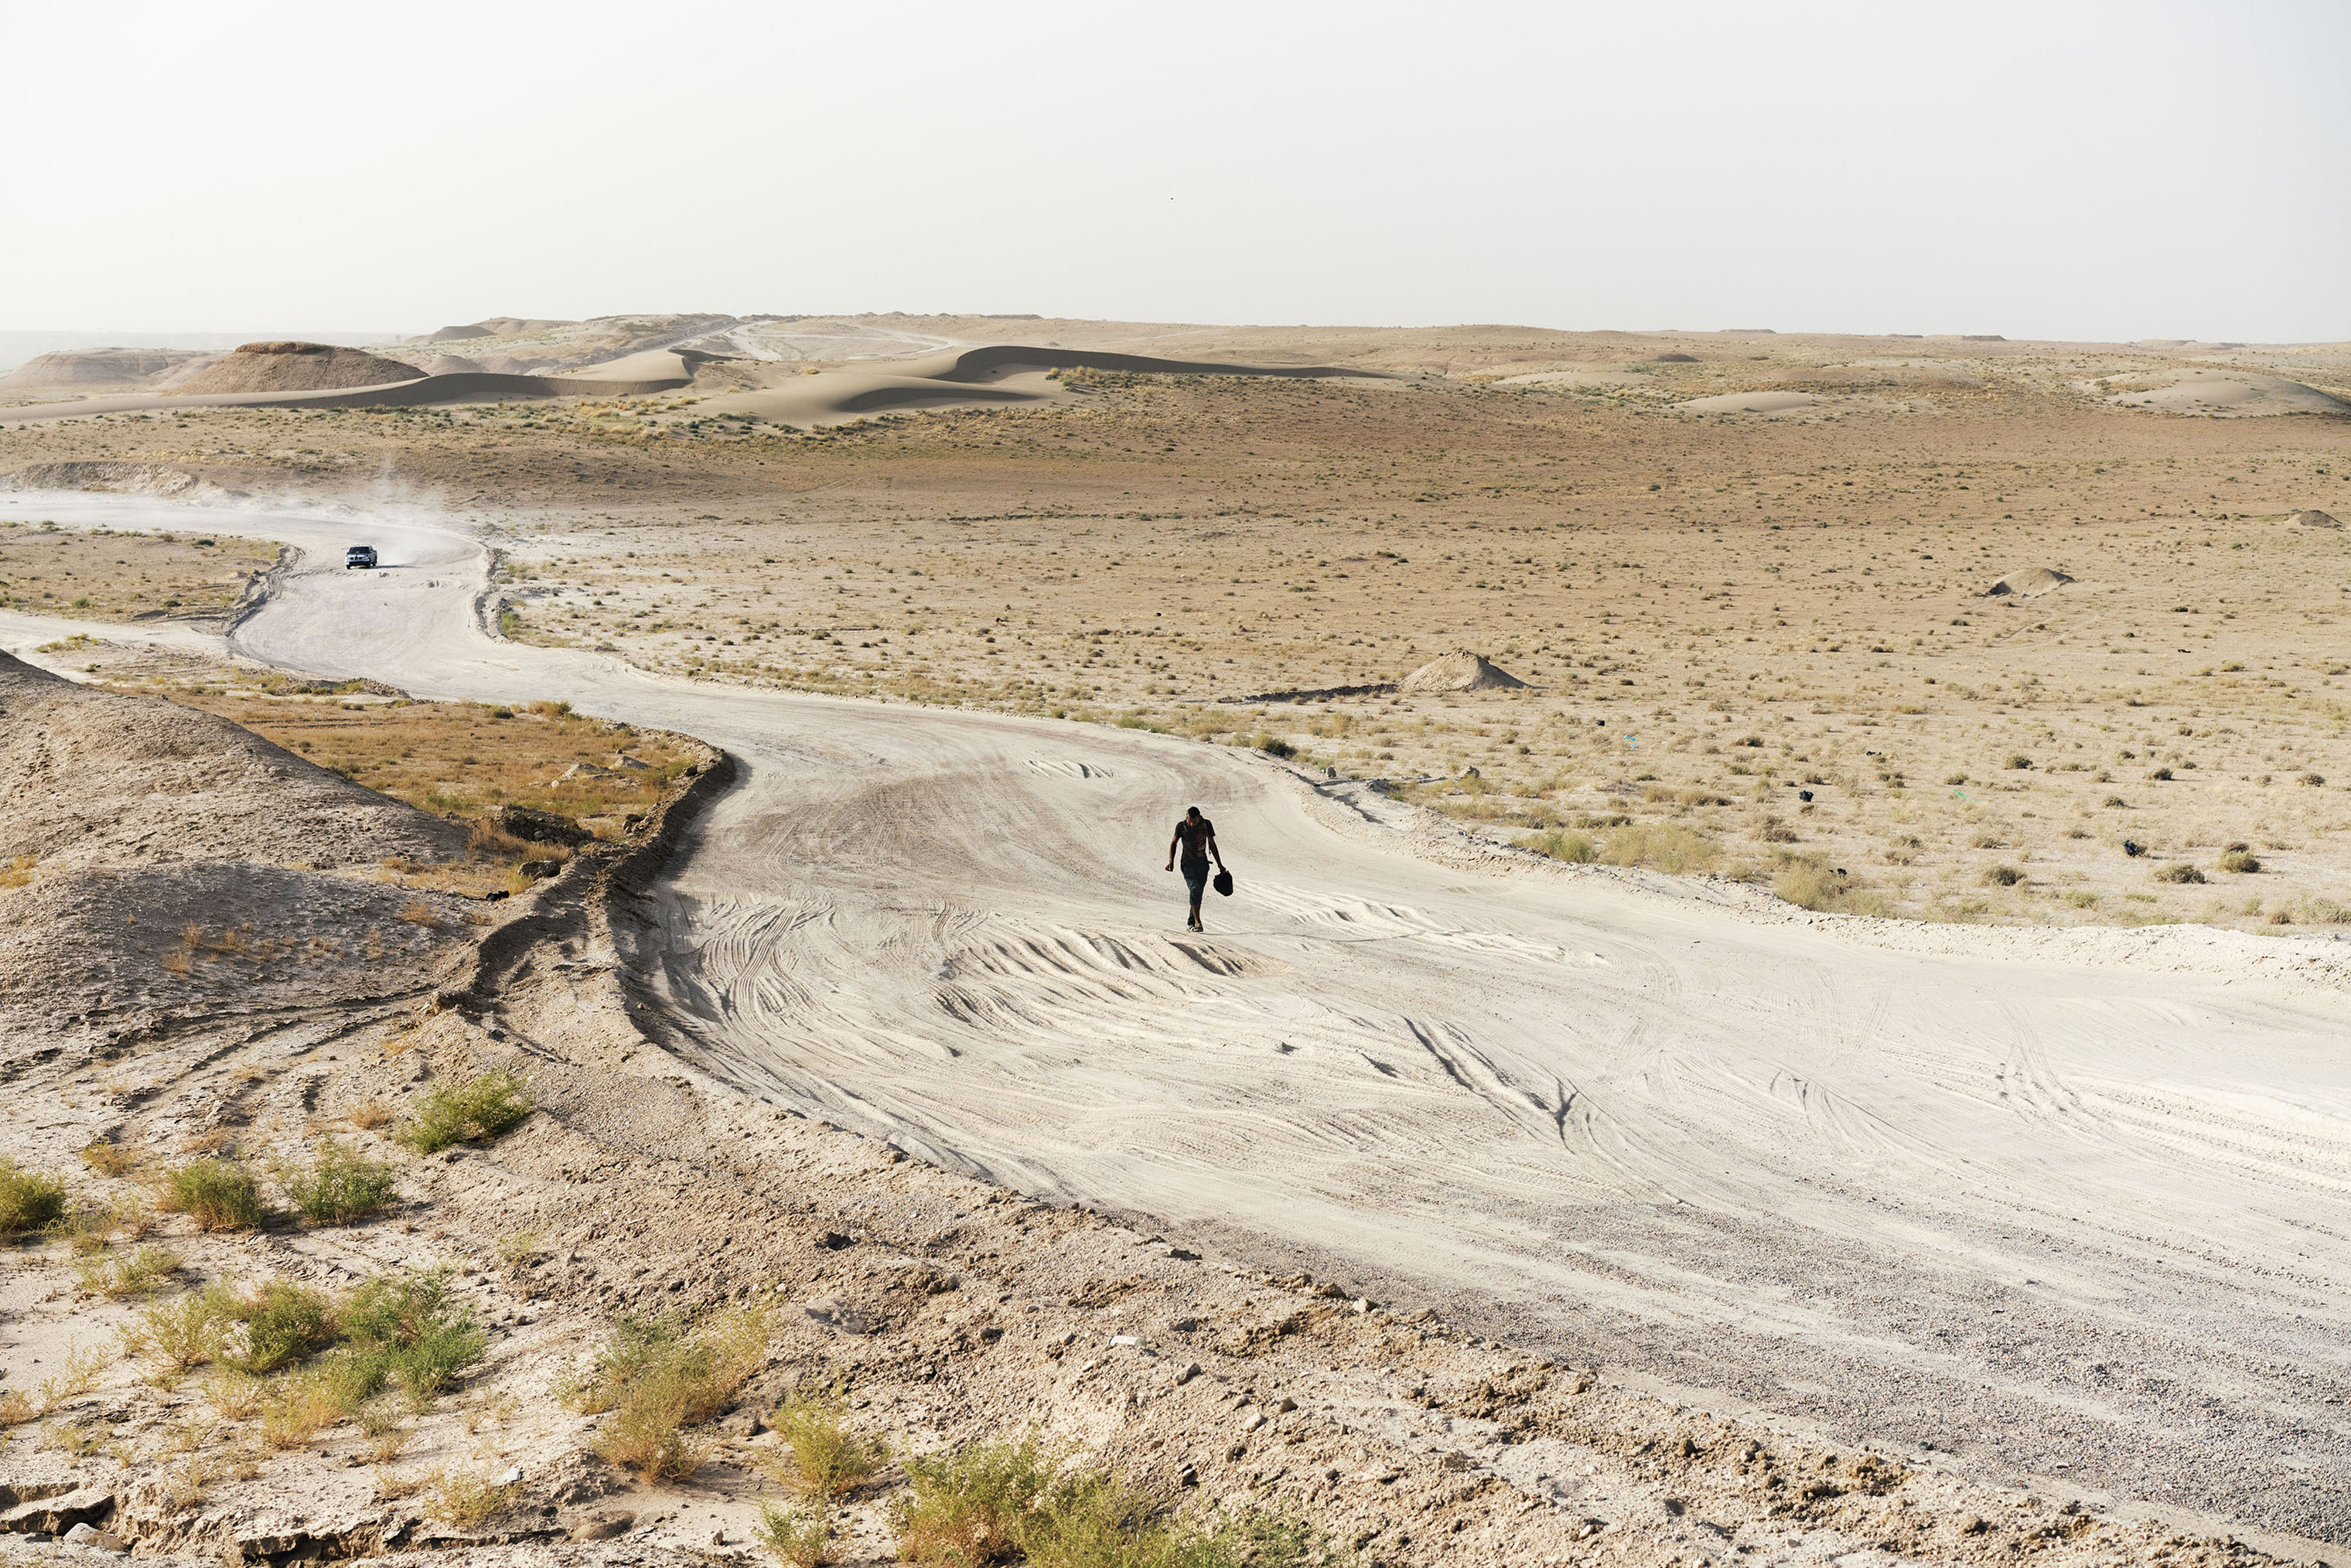 A man walks along a desert road near the town of Khalidiyah, in Iraq's Anbar Province, on July 12, 2016. The man, a native of Ramadi, was displaced when ISIS arrived in the city, and now lives with his family in a camp in the nearby town of Habbaniyah. Every day, he walks from Habbaniyah to Ramadi, where he works as a laborer clearing rubble from the war-torn streets.